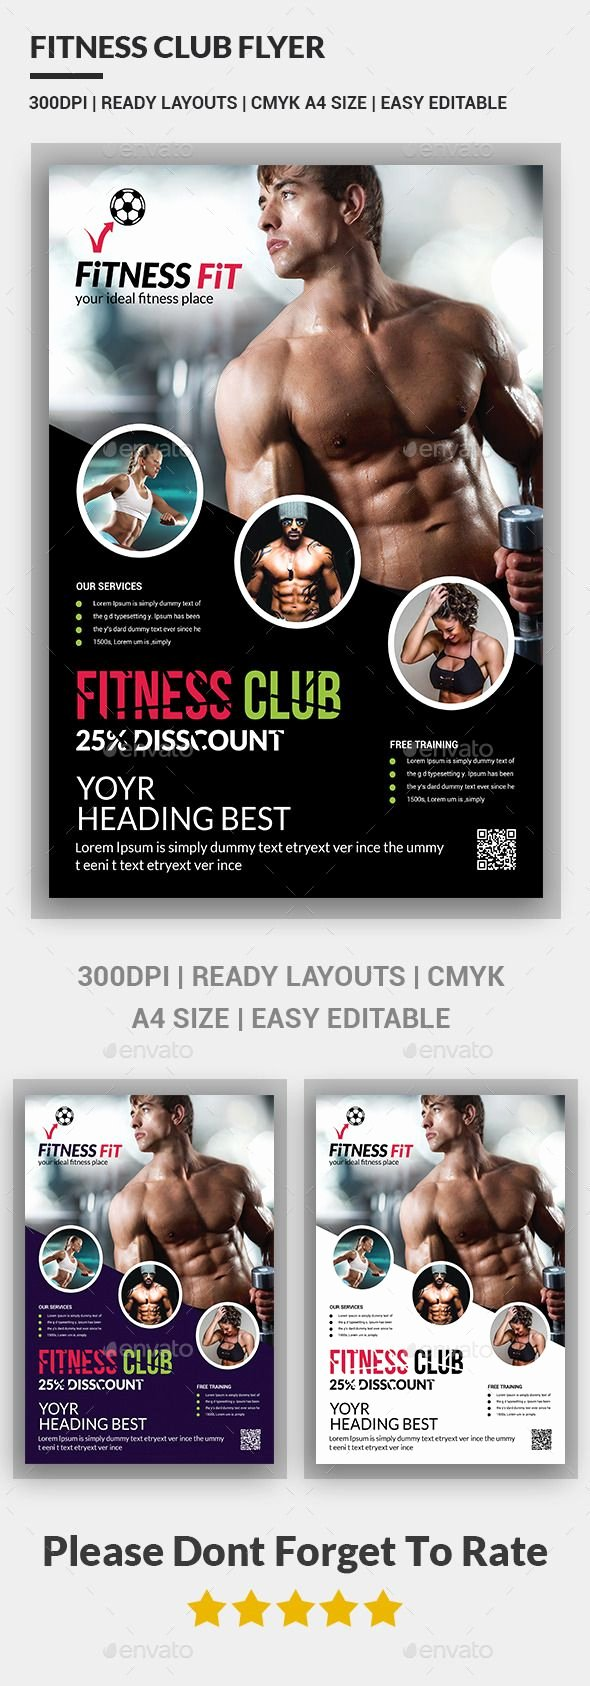 Fitness Flyer Template Free Luxury 57 Best Images About Fitness On Pinterest